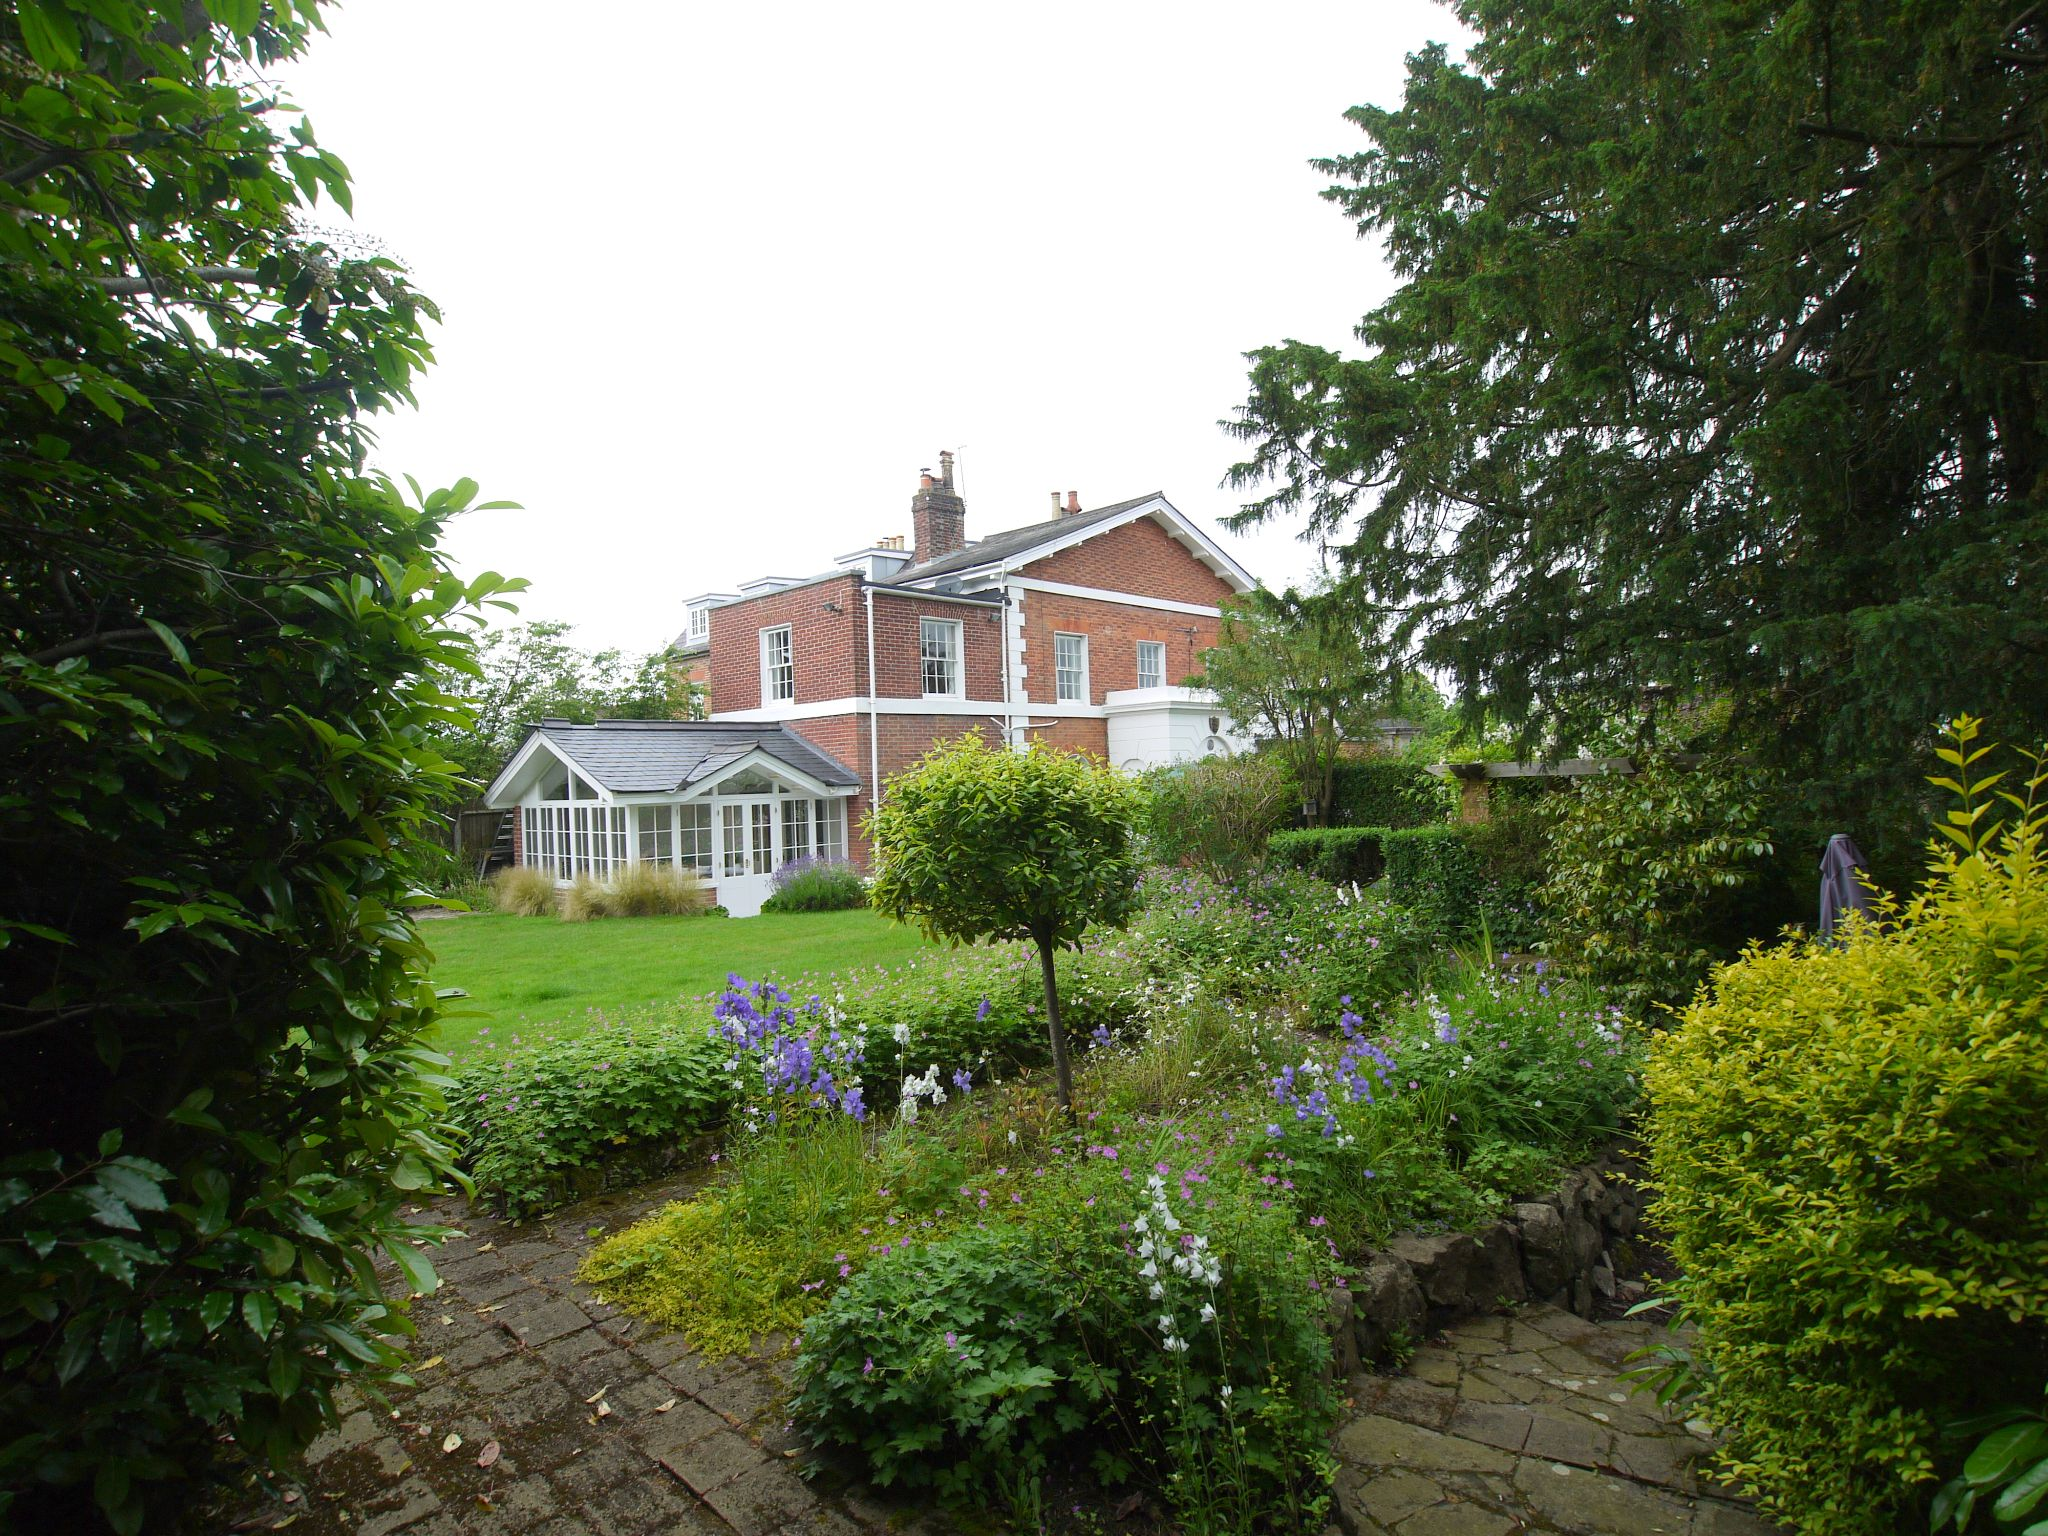 4 bedroom detached house For Sale in Sevenoaks - Photograph 21